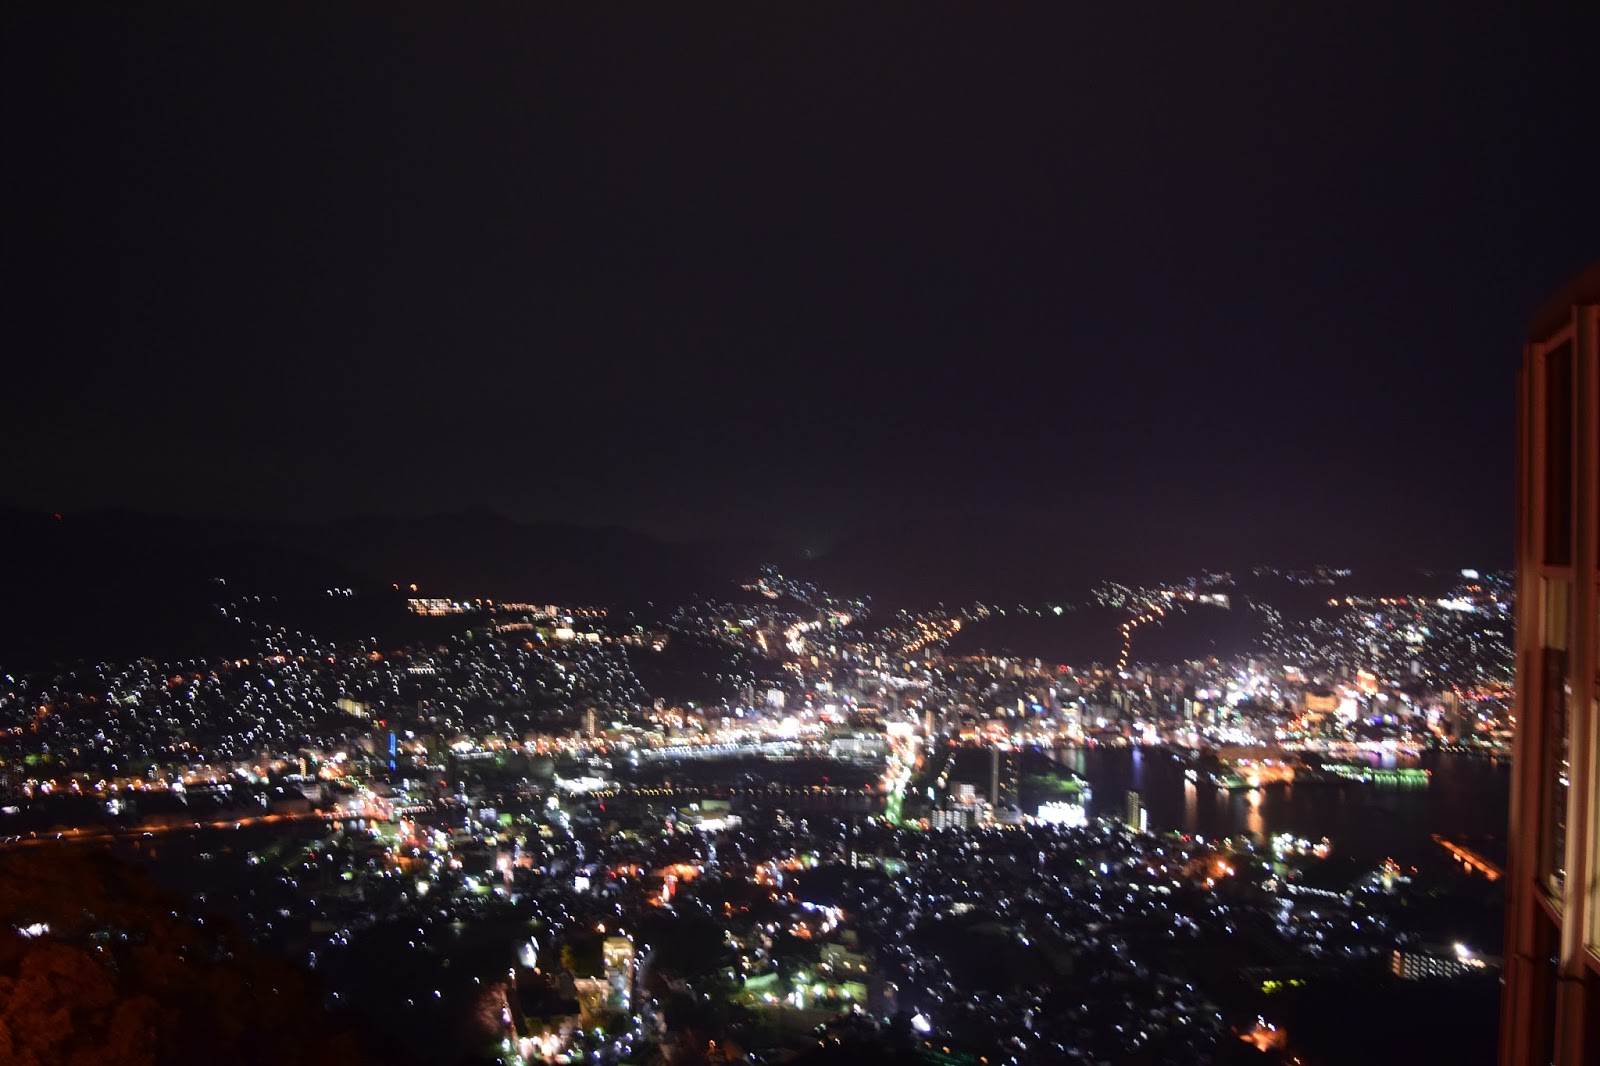 Inasa Yama Nagasaki night view